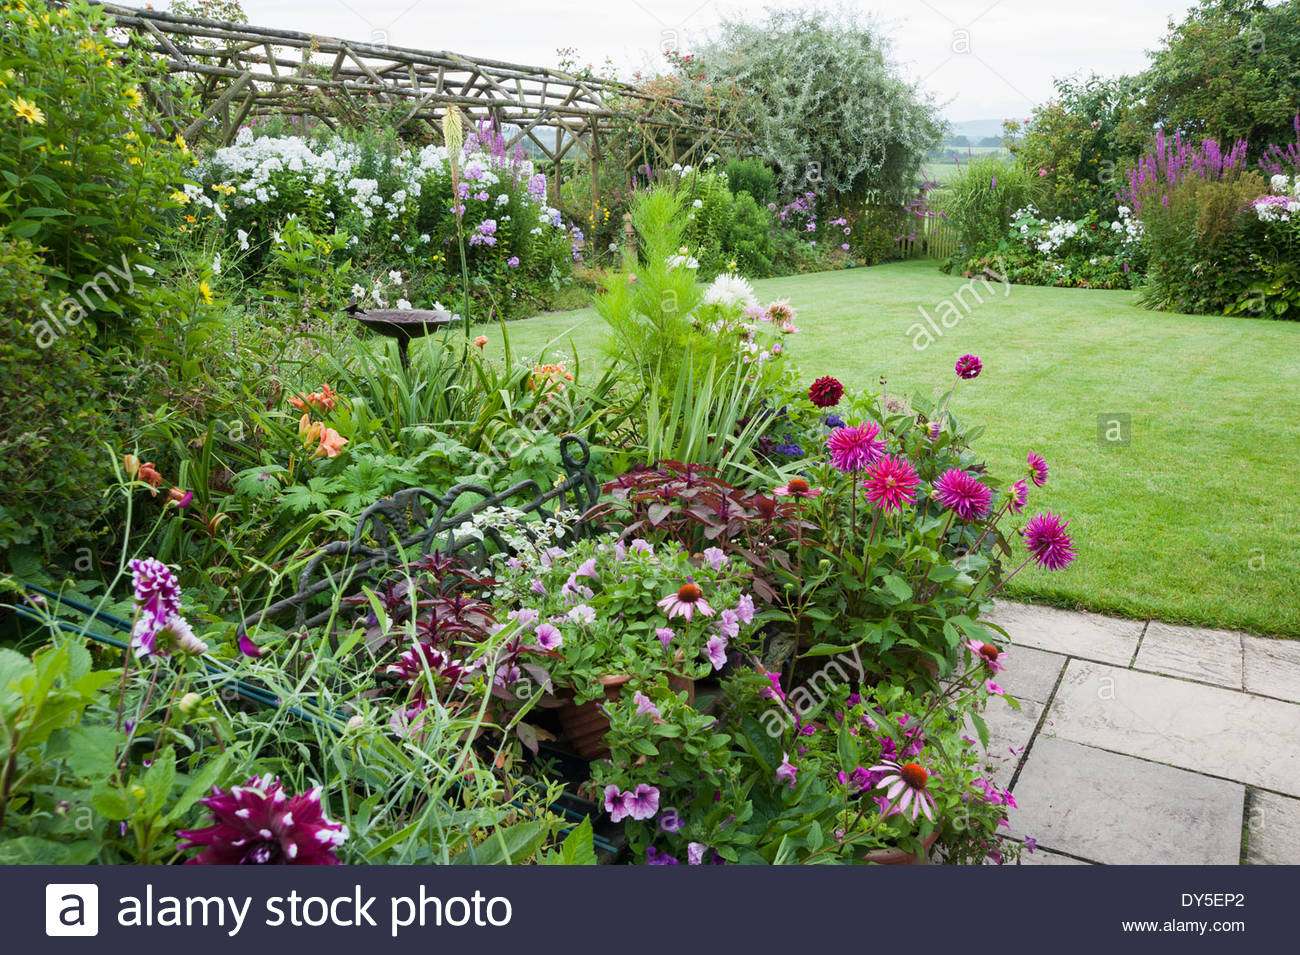 Pots Of Echinaceas, Petunias And Dahlias On A Paved Area Beside The House,  With Lawn And Gate Into Fields Beyond. Hilltop Dorset